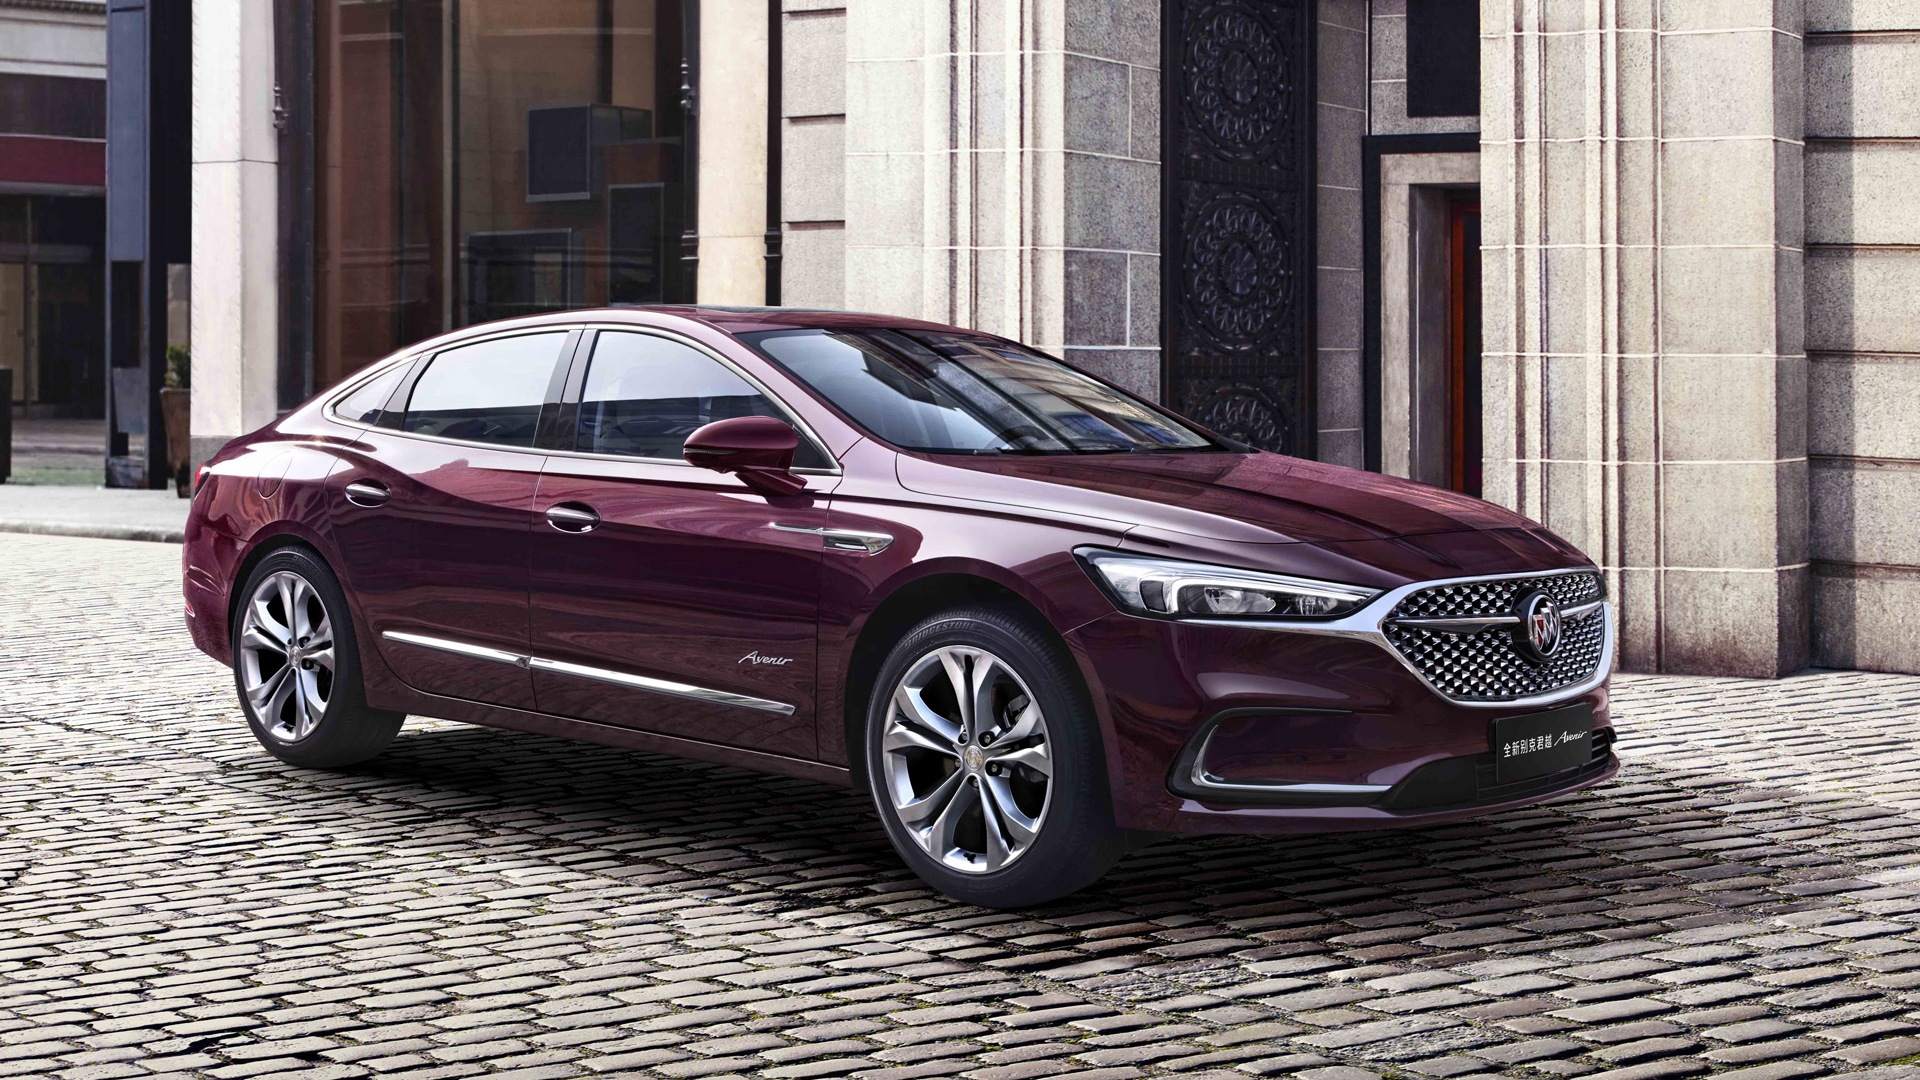 Car Spy Shots, News, Reviews, And Insights - Motor Authority New 2021 Buick Lacrosse Brochure, Release Date, Colors